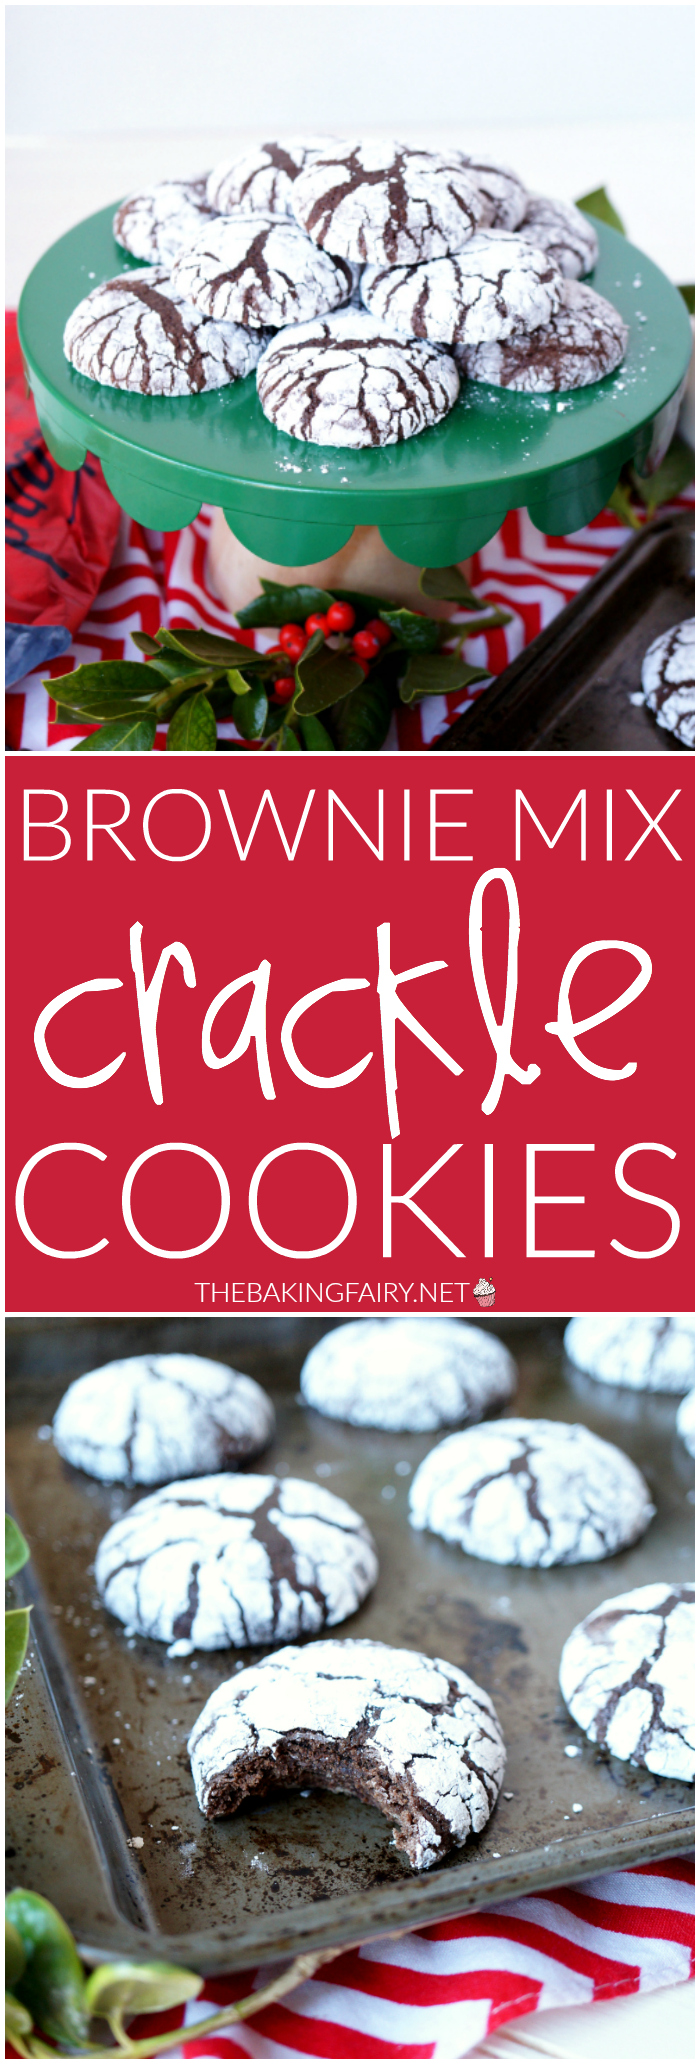 brownie mix crackle cookies   The Baking Fairy